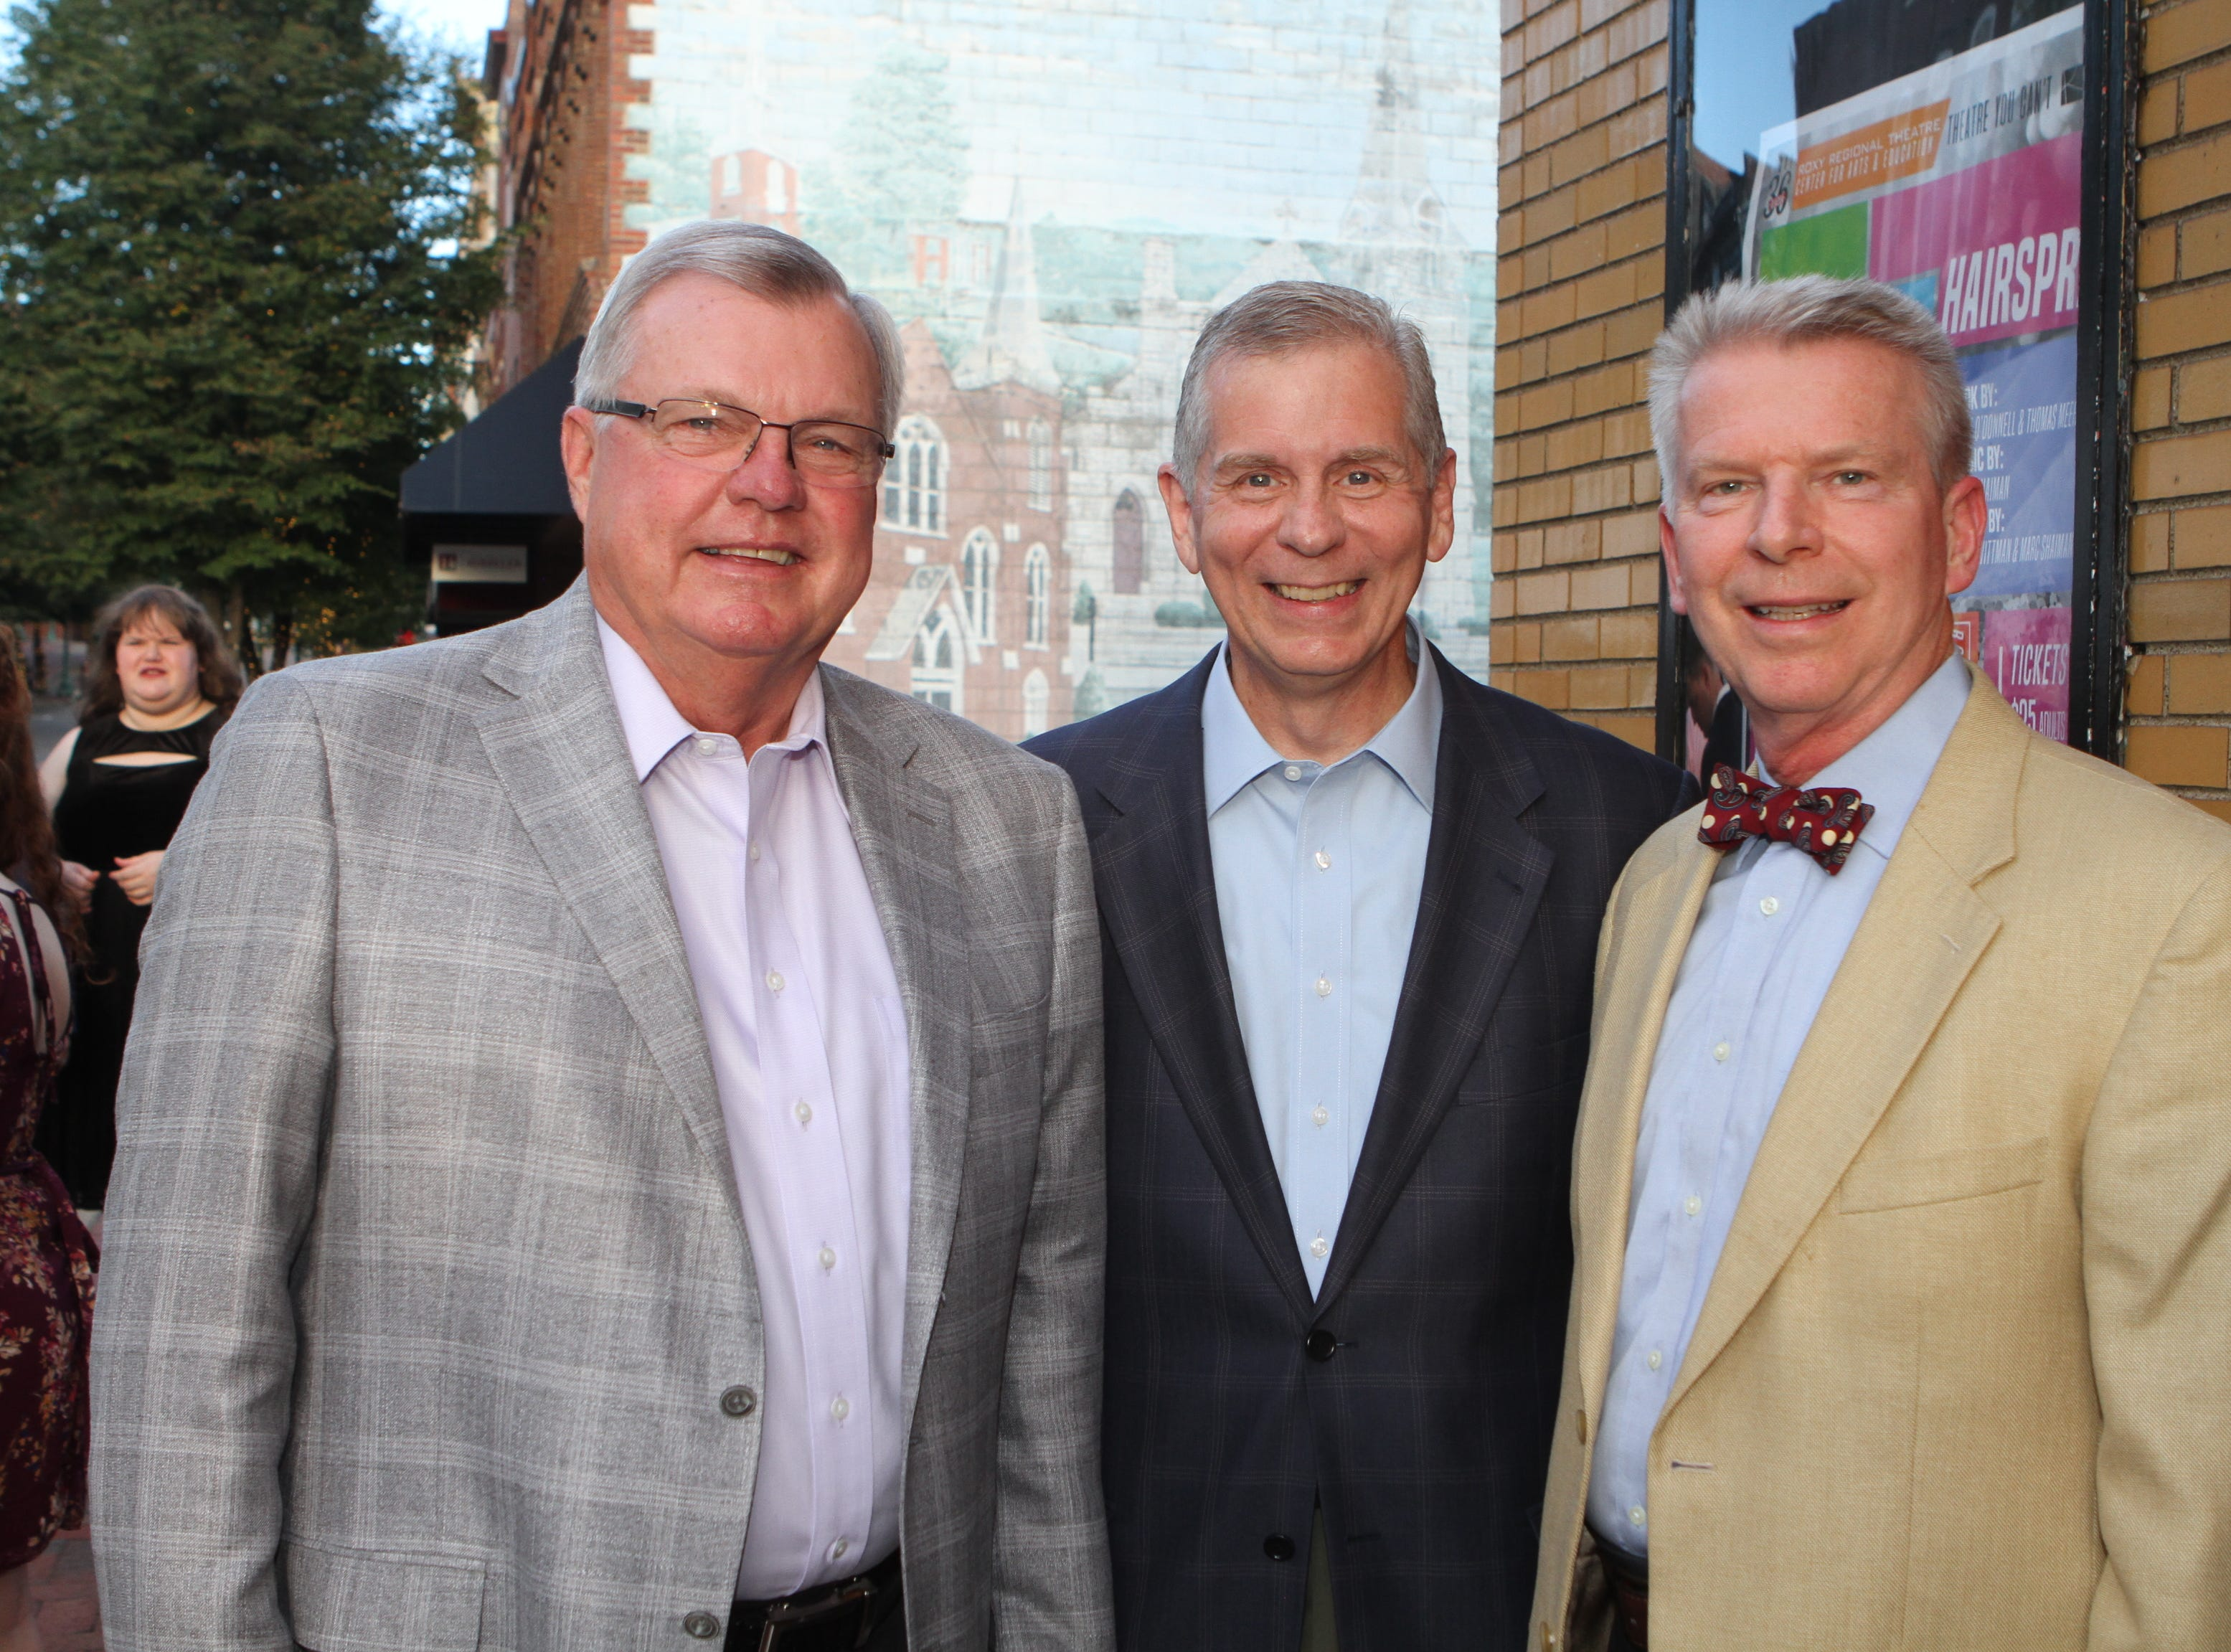 Curtis Johnson, Joe Pitts and Dr. Bill Wall  at the 36th Annual Roxy Gala on Saturday, Sept. 15, 2018.